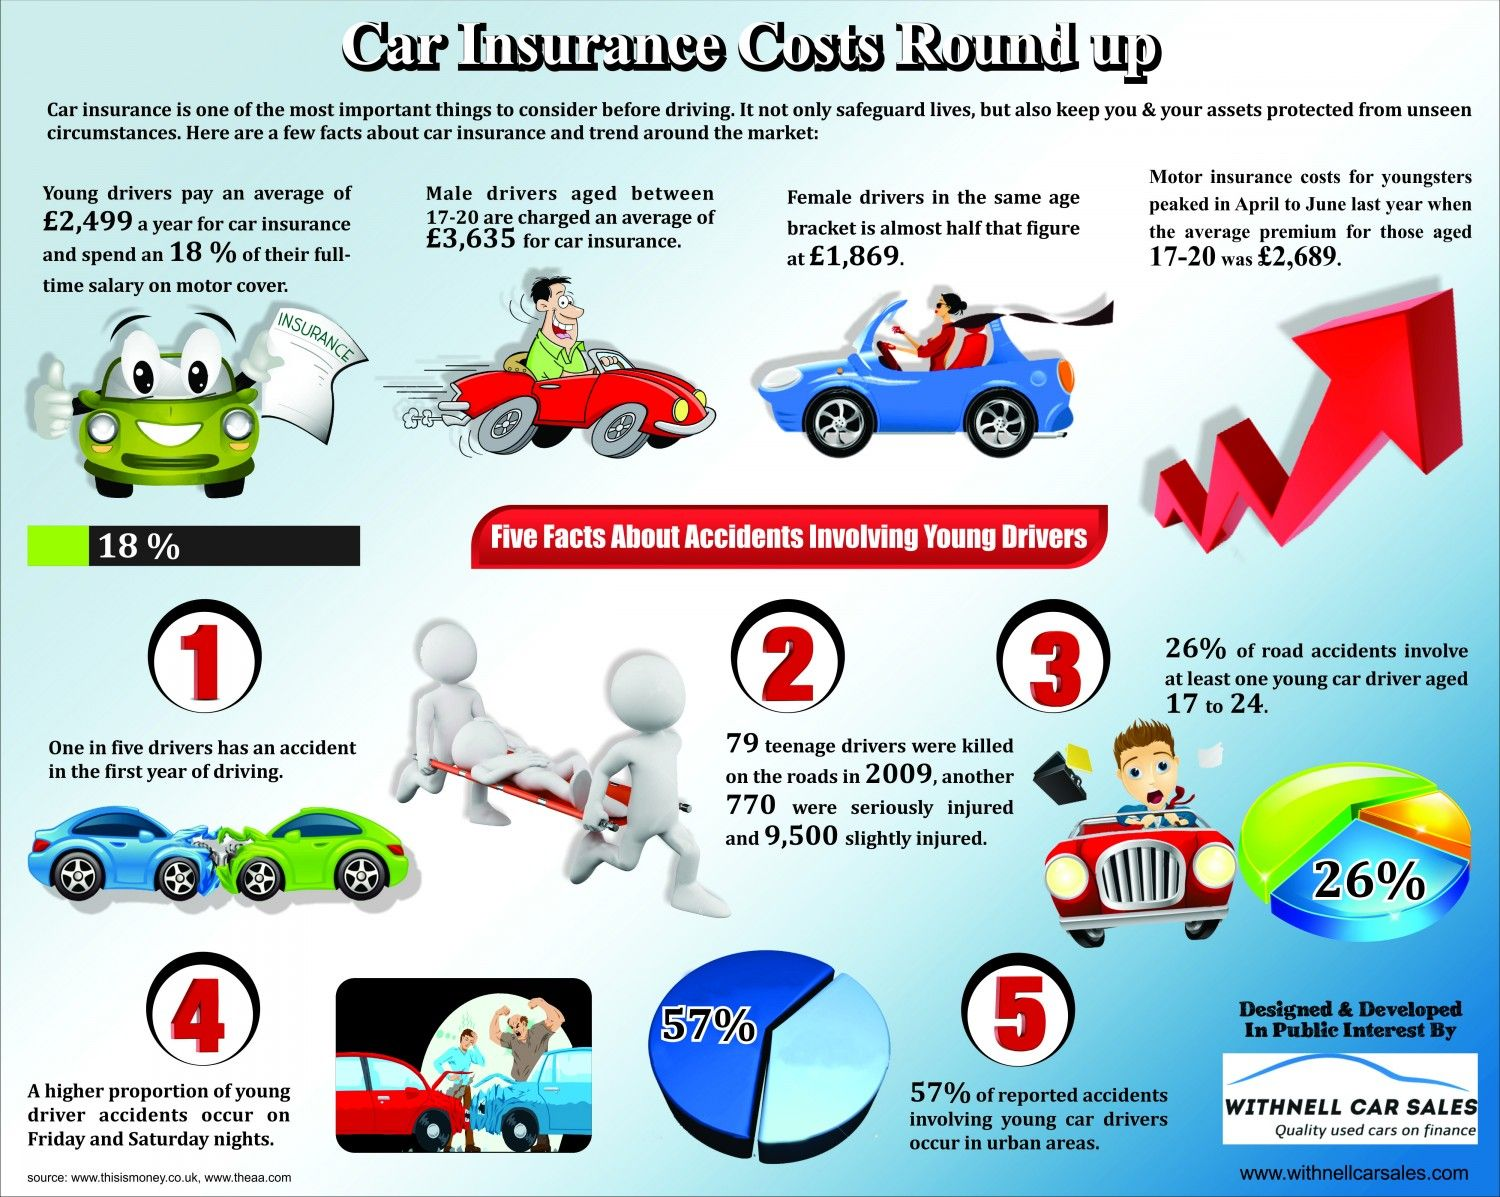 Pin By Christine Hurford On Used Car For Sale Car Insurance Car Insurance Cost Cars For Sale